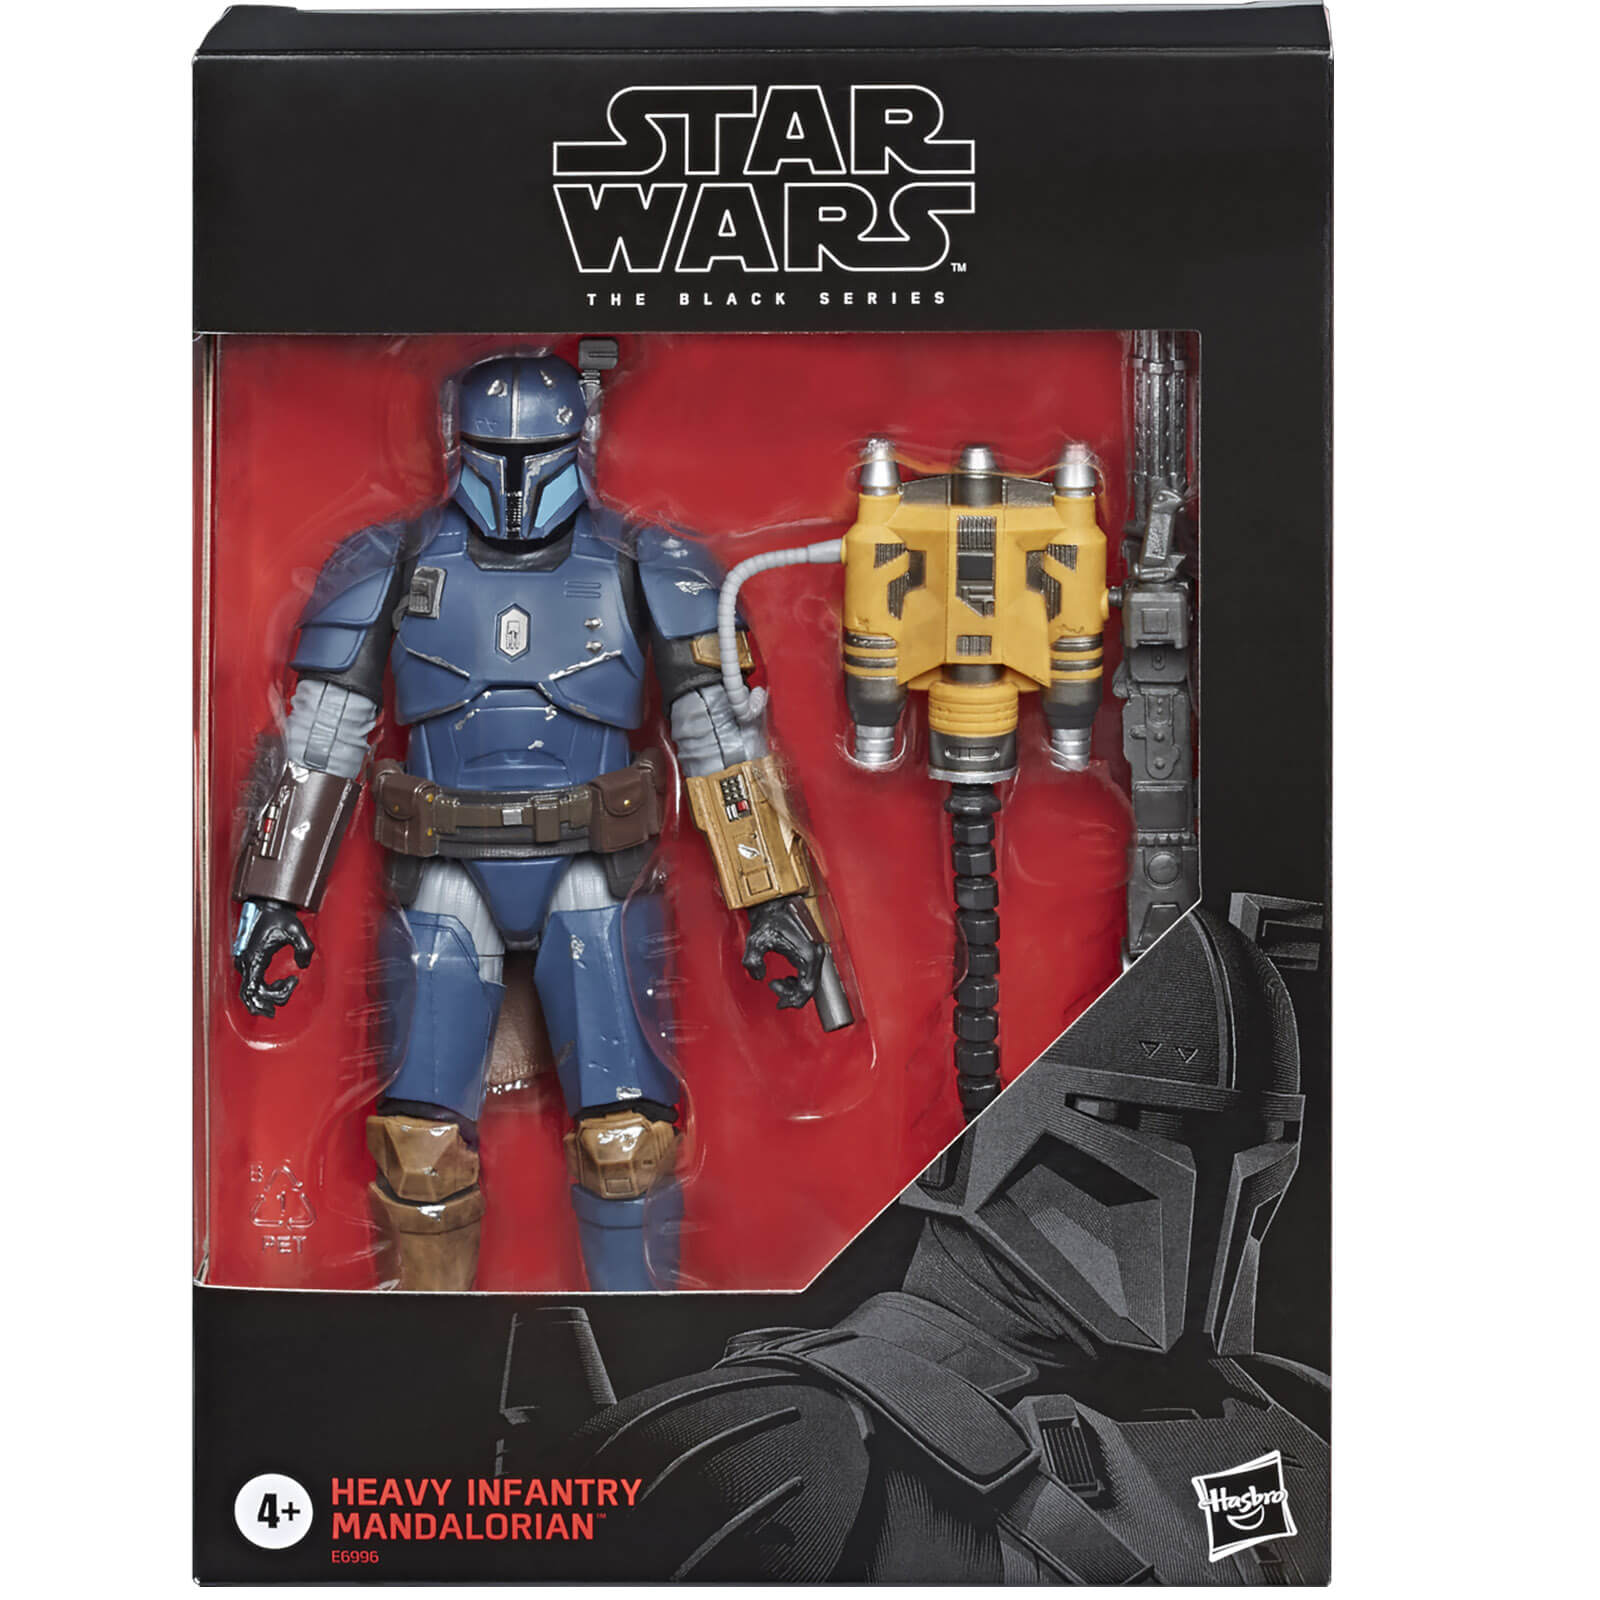 Image of Hasbro Star Wars The Mandalorian The Black Series Heavy Infantry 6 Inch Action Figure